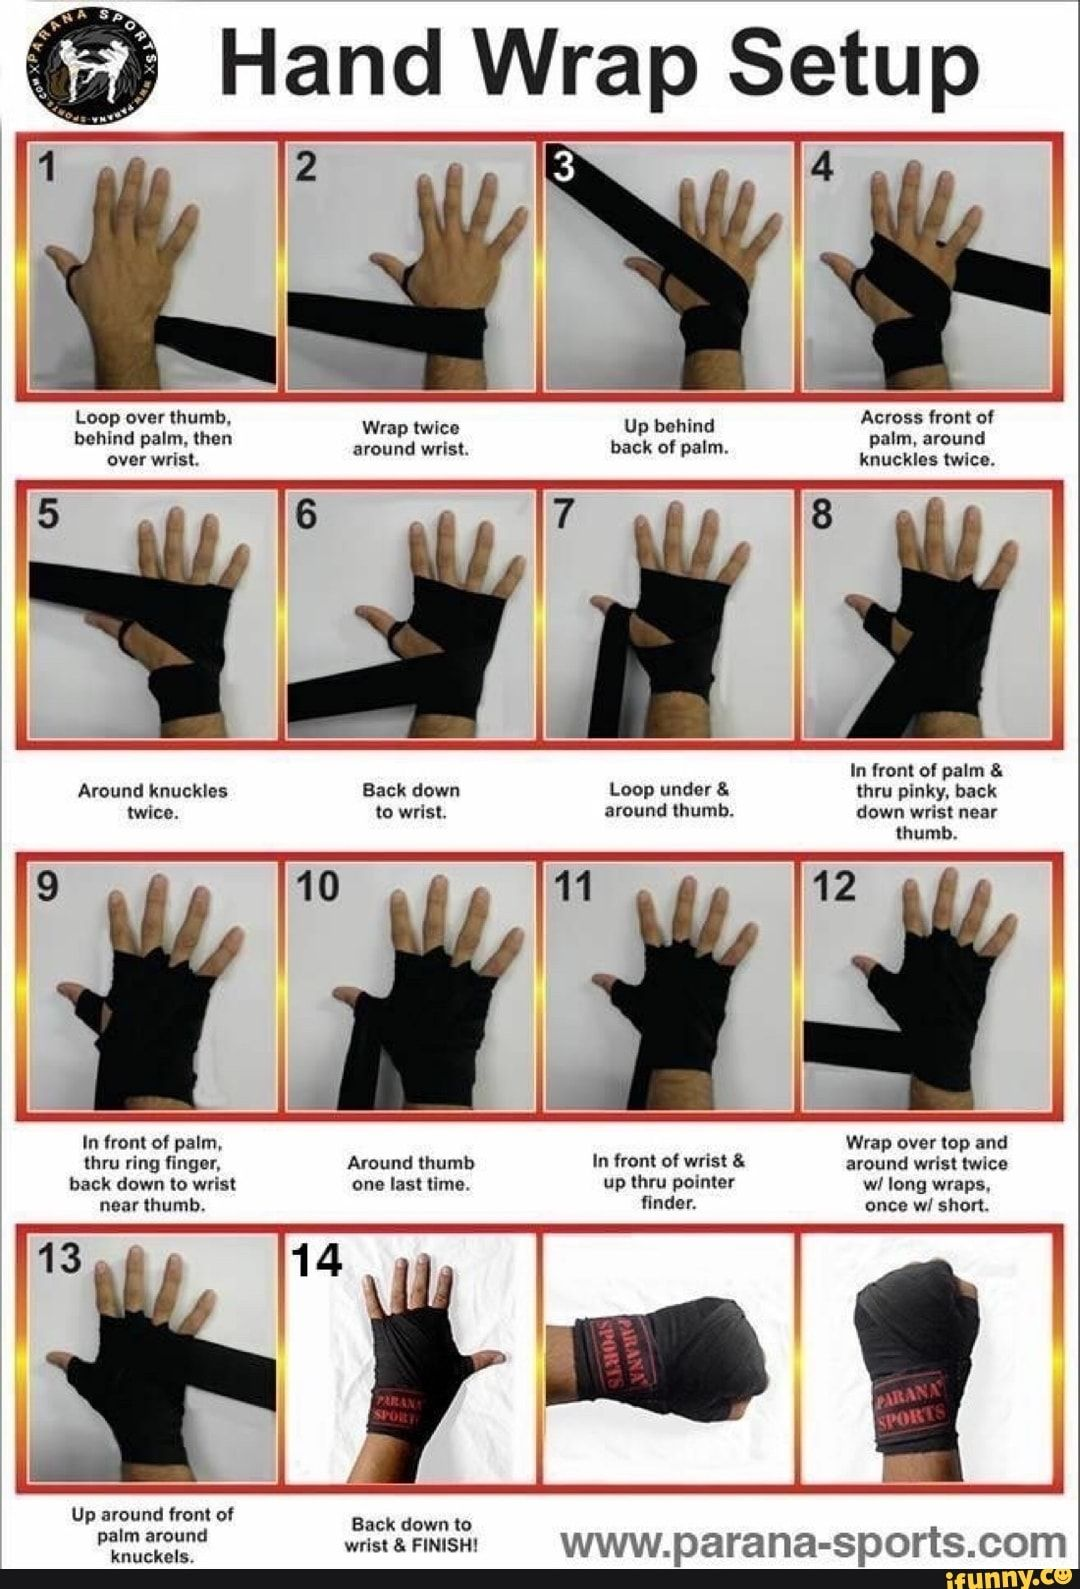 Hand Wrap Setup 2 Loop over thumb, behind palm, then over wrist. Up behind Across front of baals palm, around knuckles twice. Wrap twice around wrist. back of palm. 5 In front of palm & Around knuckles Back down Loop under & thru pinky, back twice. to wrist. around thumb. down wrist near thumb. 10 11 12 In front of palm, Wrap over top and thru ring finger, Around thumb In front of wrist & around wrist twice back down to wrist one last time. up thru pointer wi long wraps, near thumb, finder. once wi short. 14 Up around front of knuckels. Back down to - )